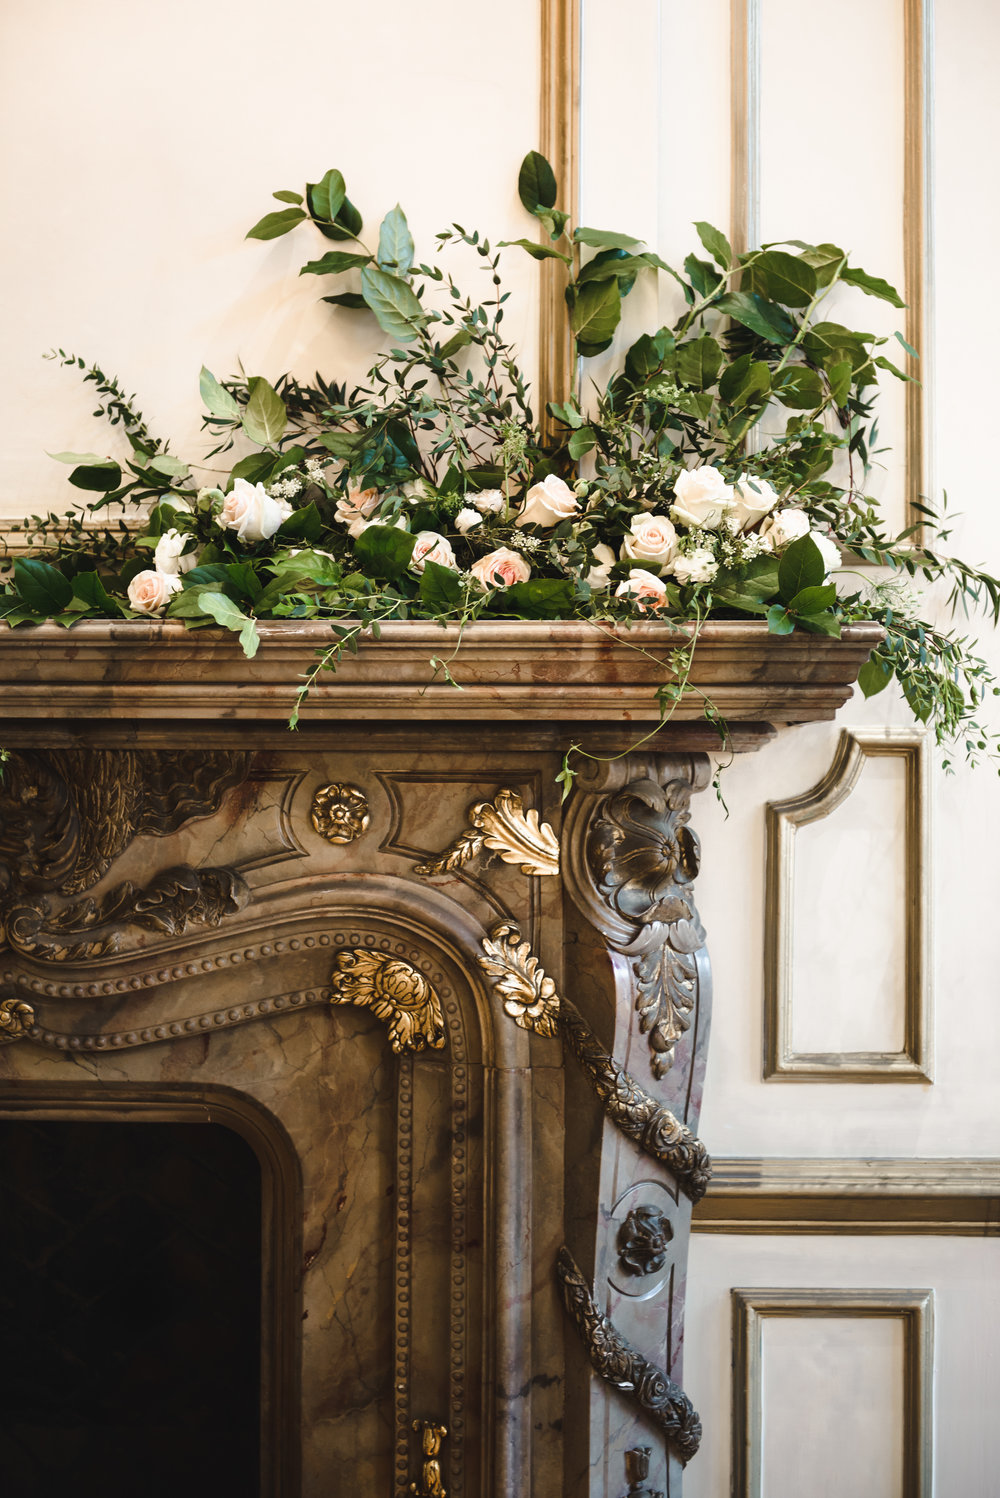 mantel florals for wedding #alexandriaballroom #lrqcfloral .jpg